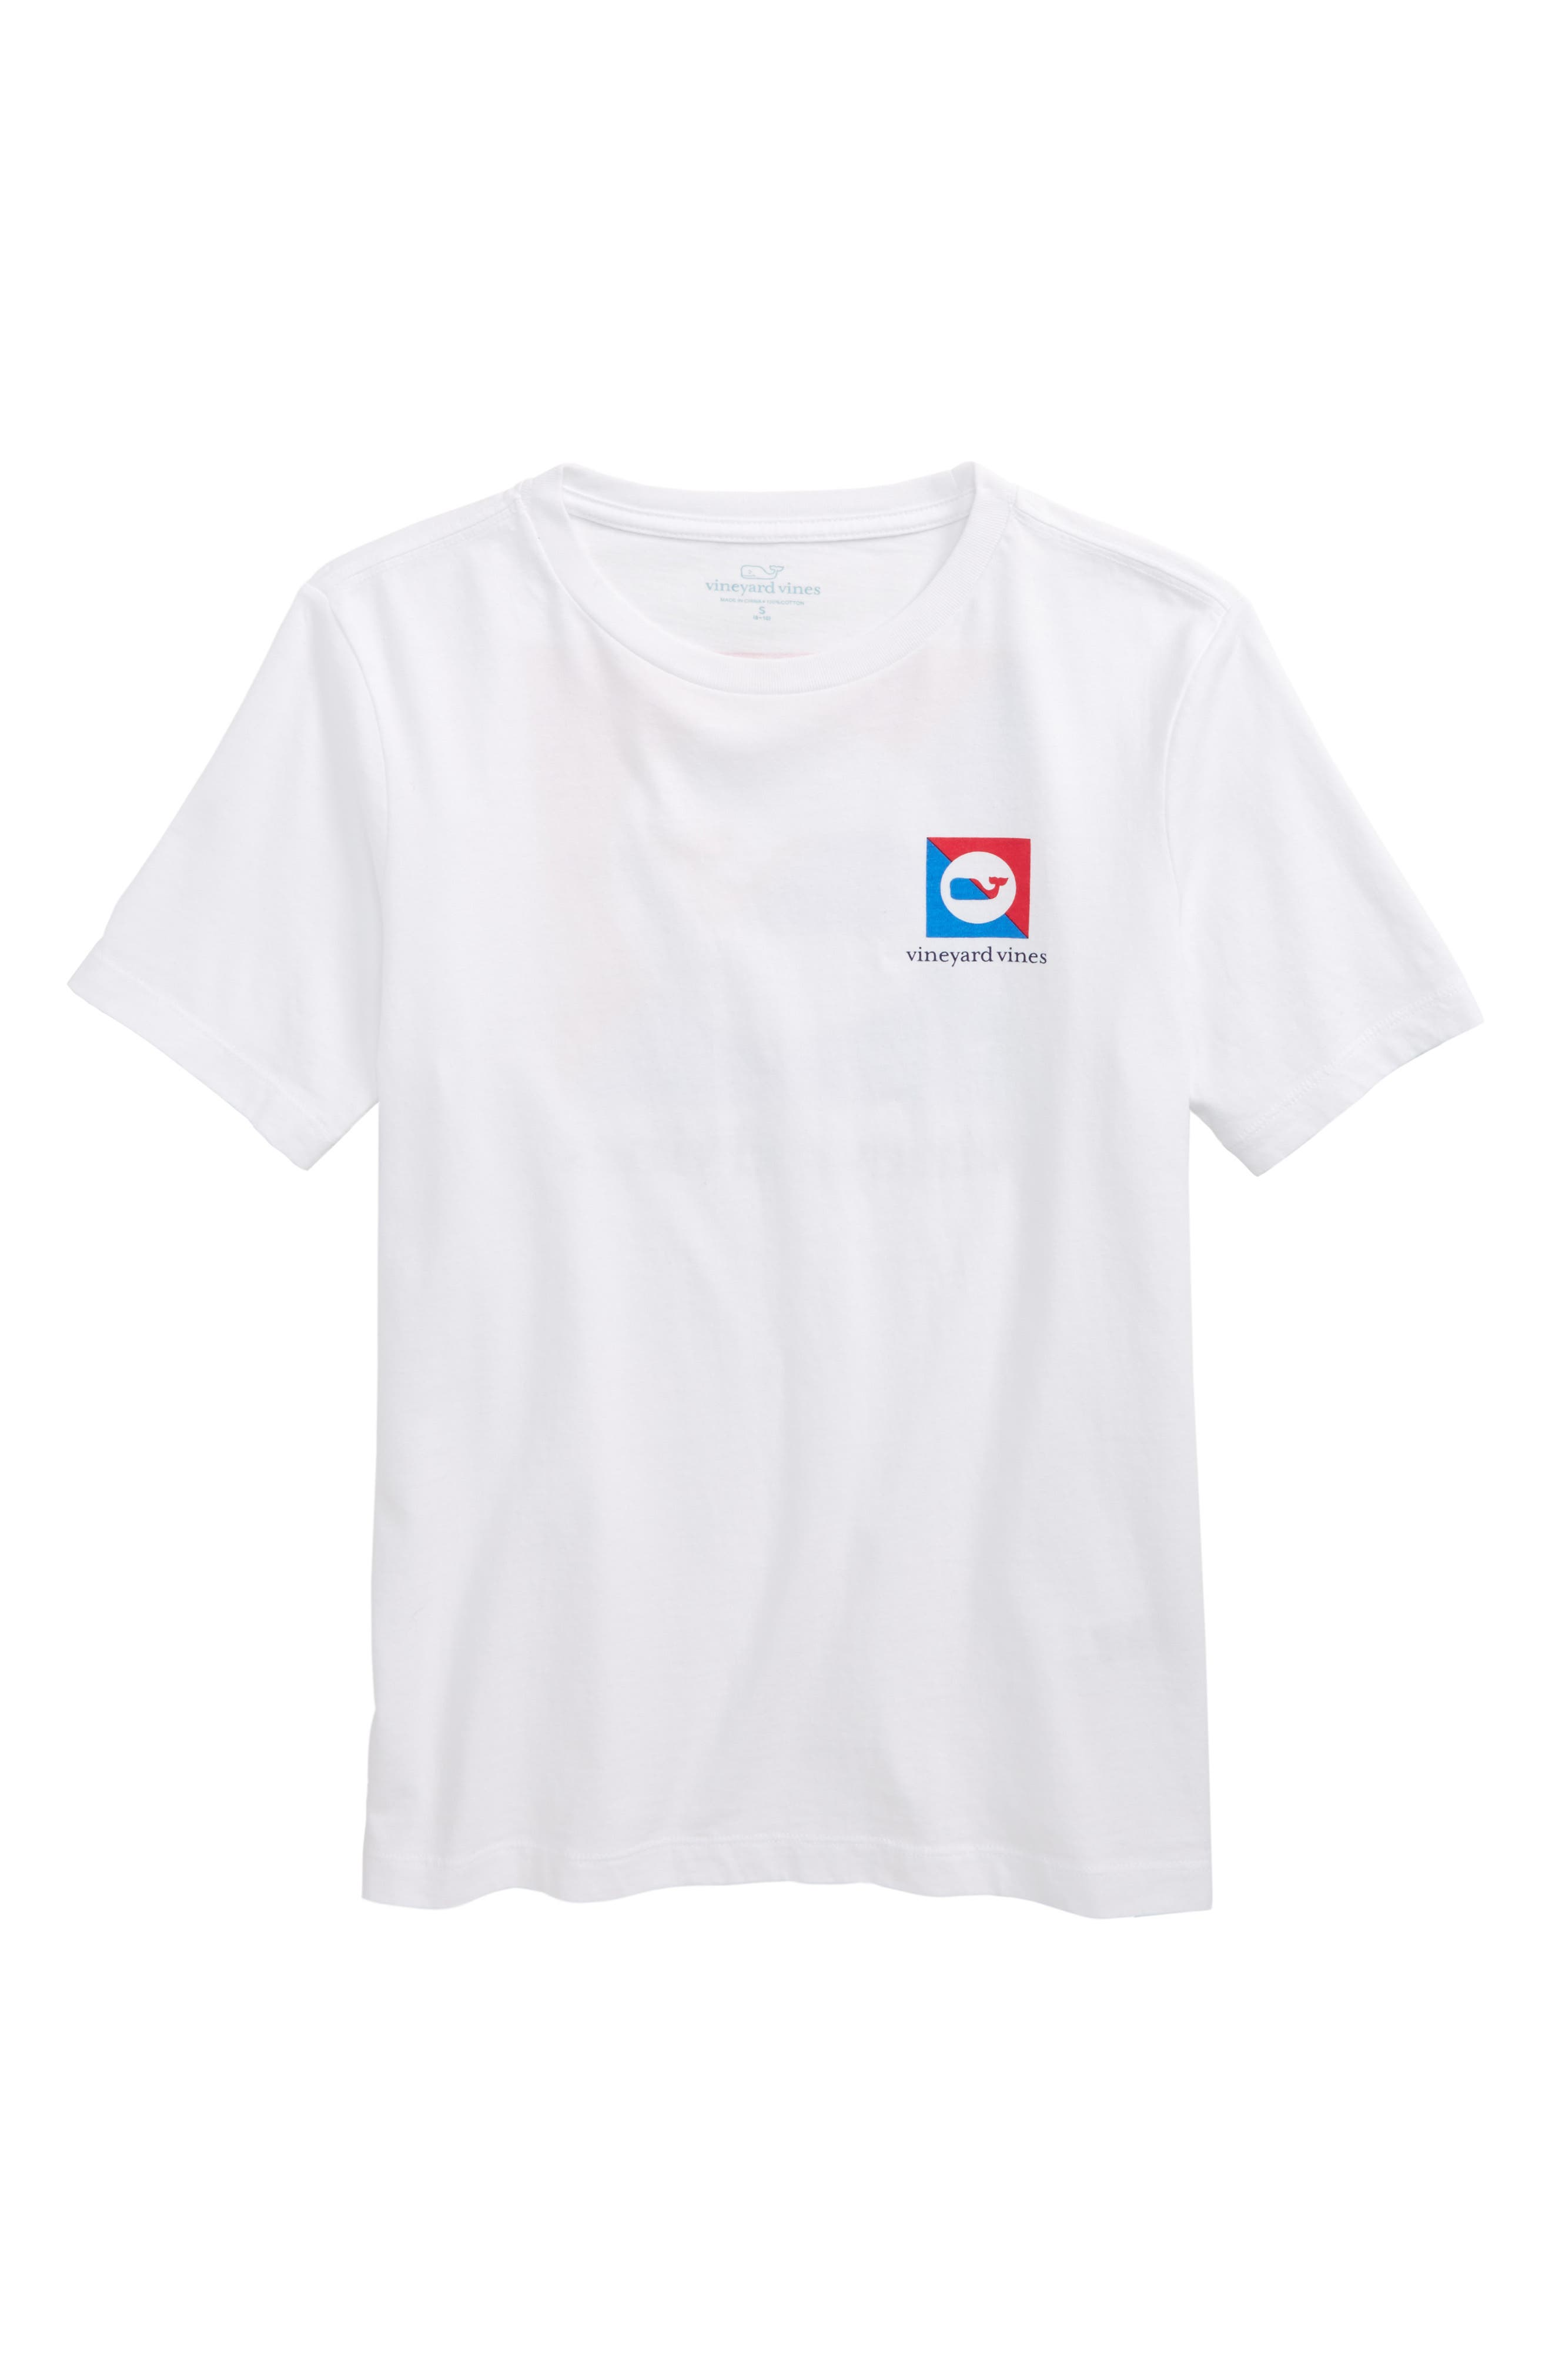 Main Image - vineyard vines Burgee Logo Graphic T-Shirt (Big Boys)